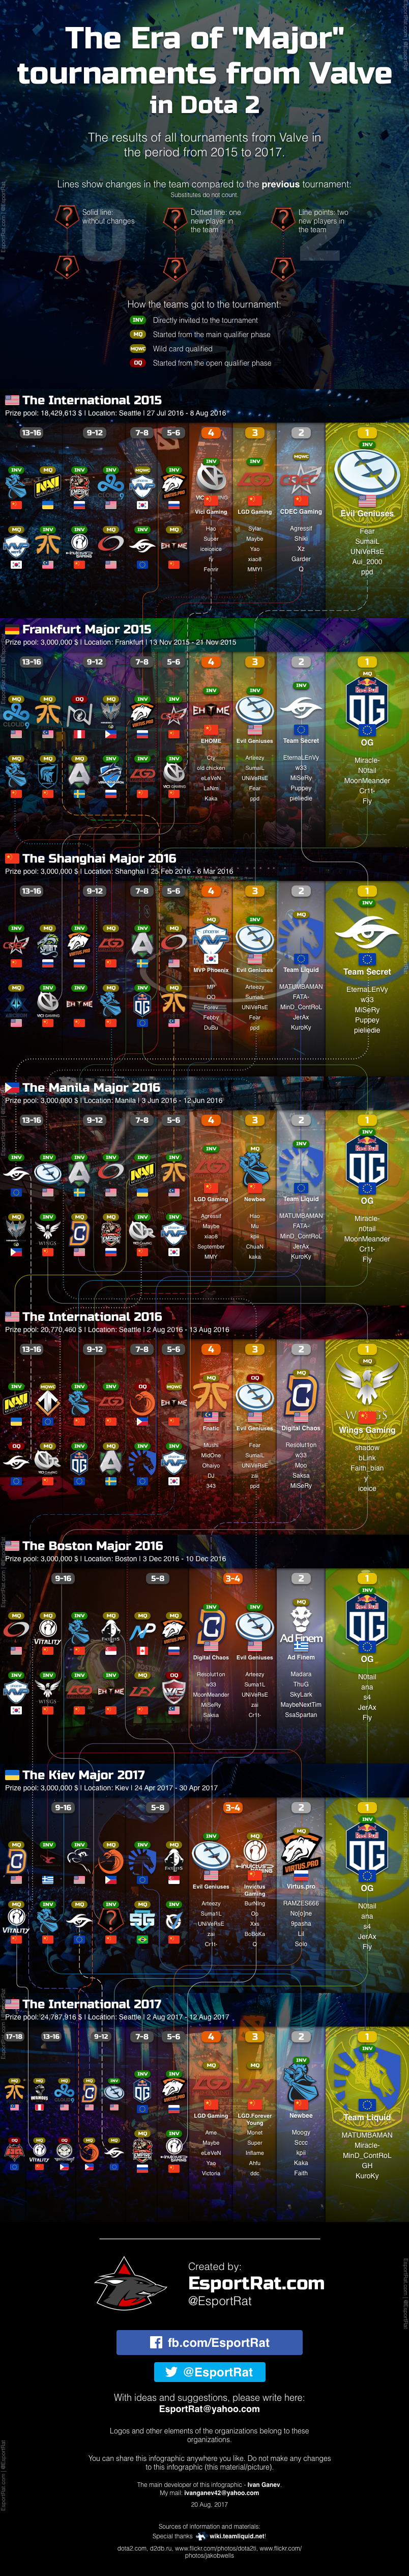 "Infographic - The Era of ""Major"" tournaments from Valve - Dota2"